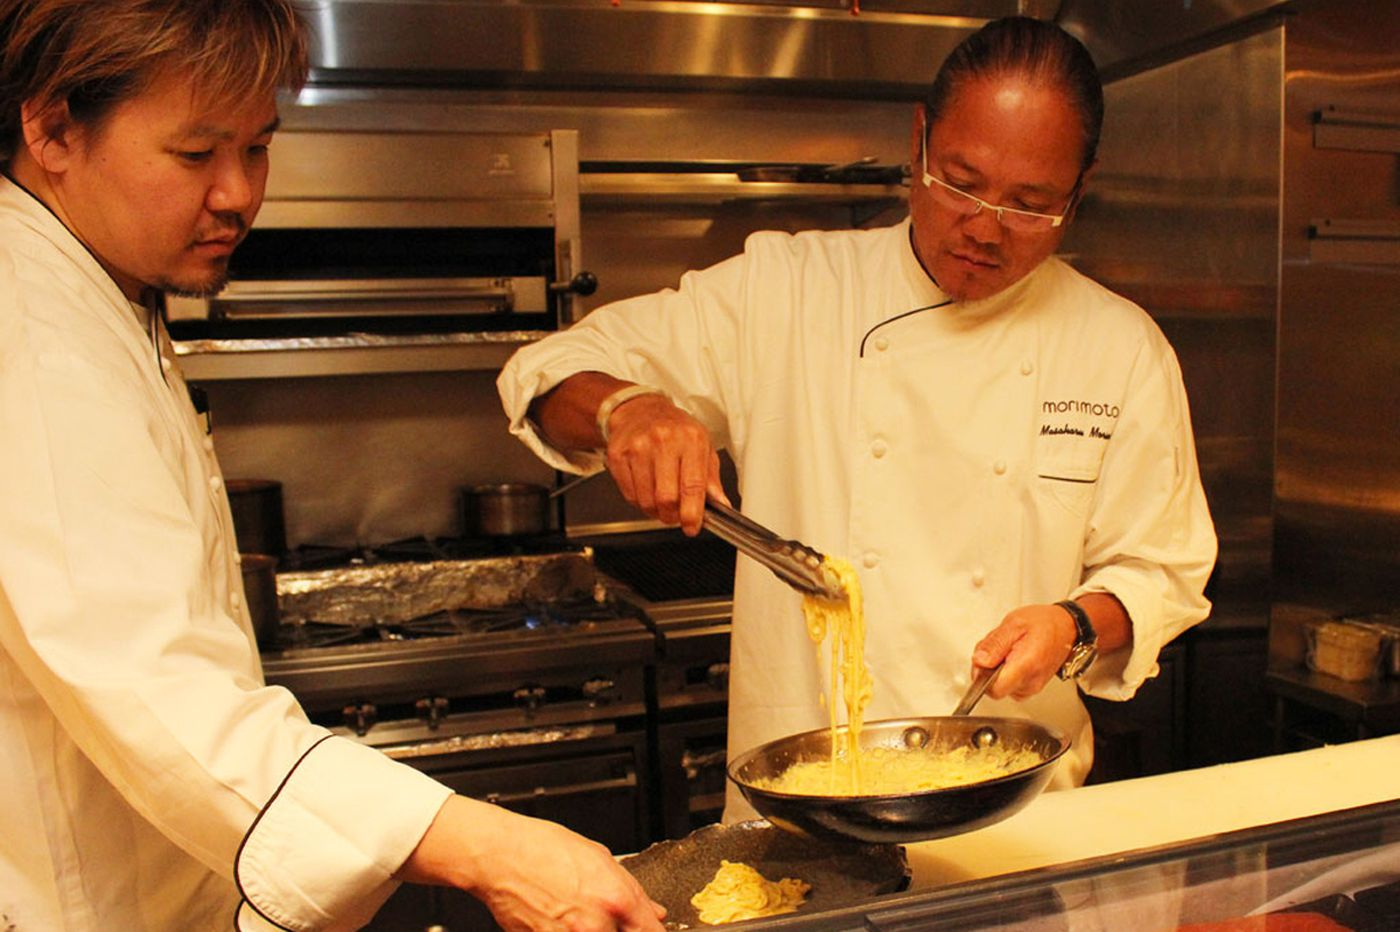 Morimoto: From humble cook to superstar